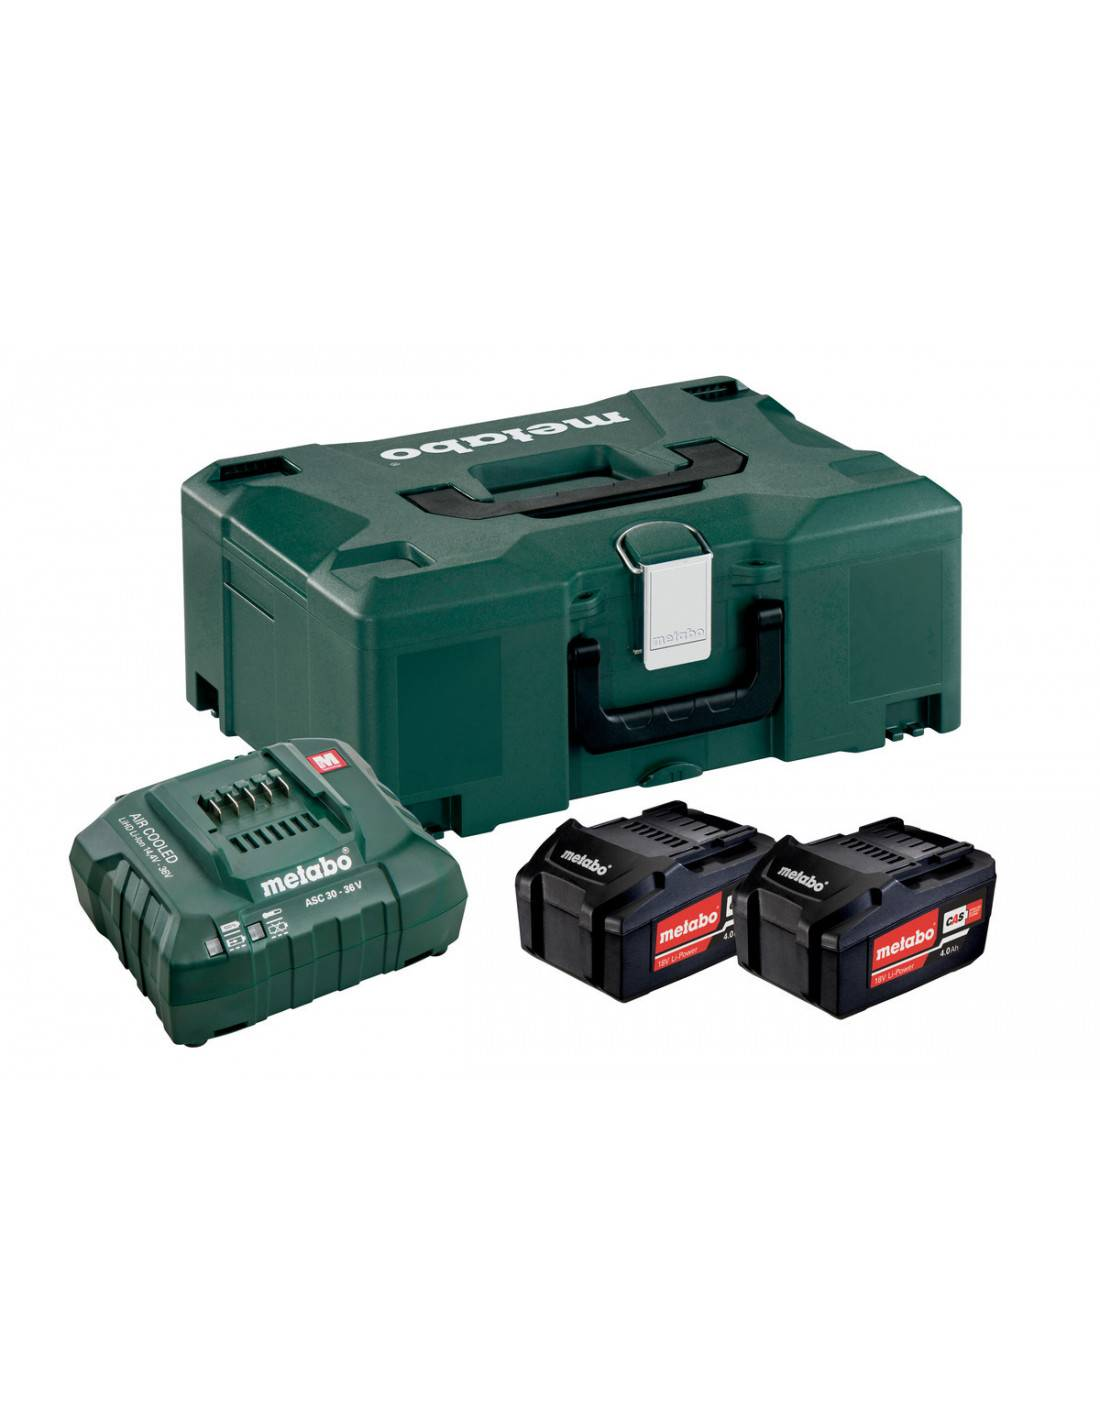 METABO - Pack 2 batteries 18V + 1 chargeur en coffret METALOC